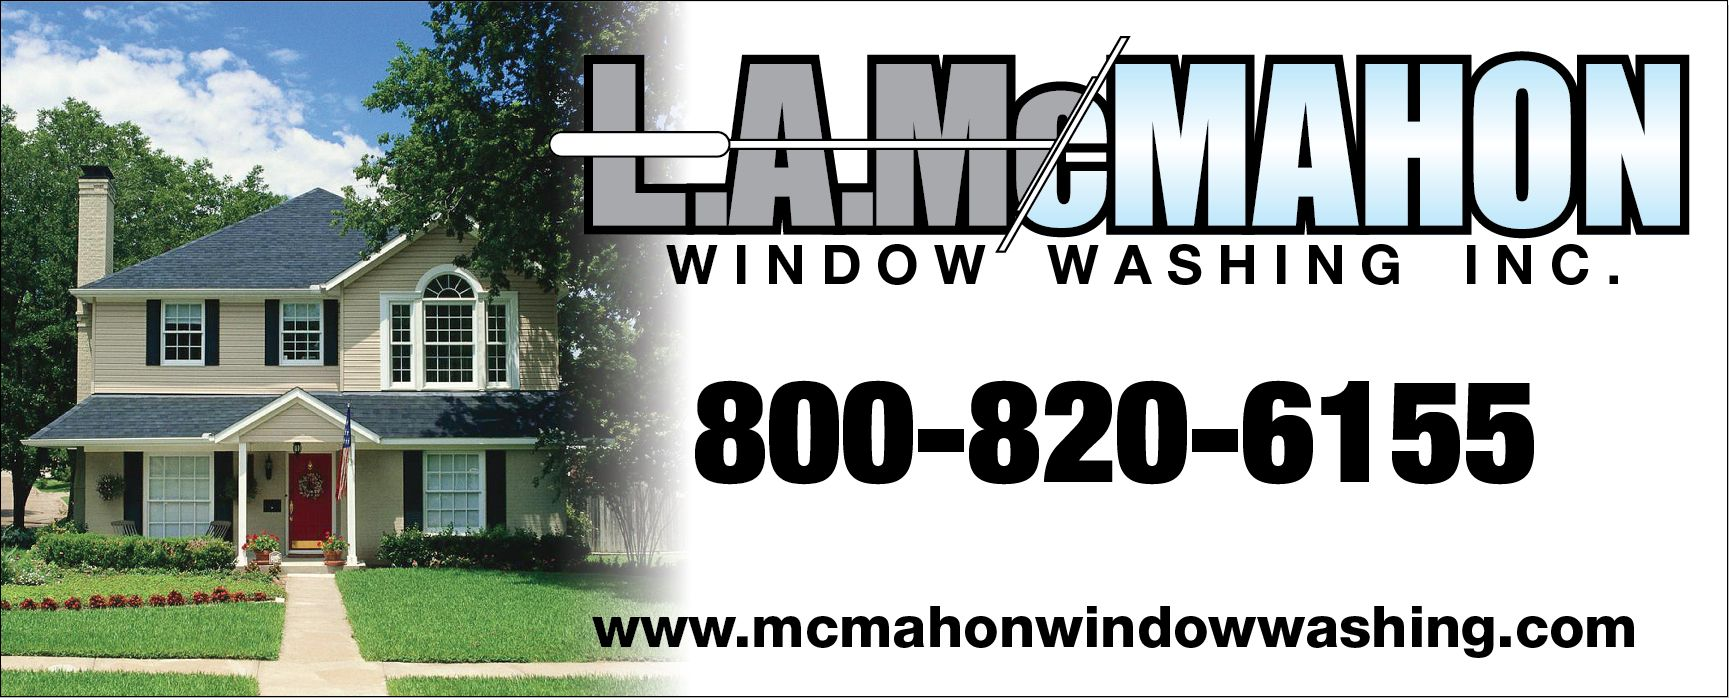 La Mcmahon Window Washing Gutter Cleaning 1 800 820 6155 Chicago Land Area Washing Windows Commercial Window Cleaning Window Cleaner